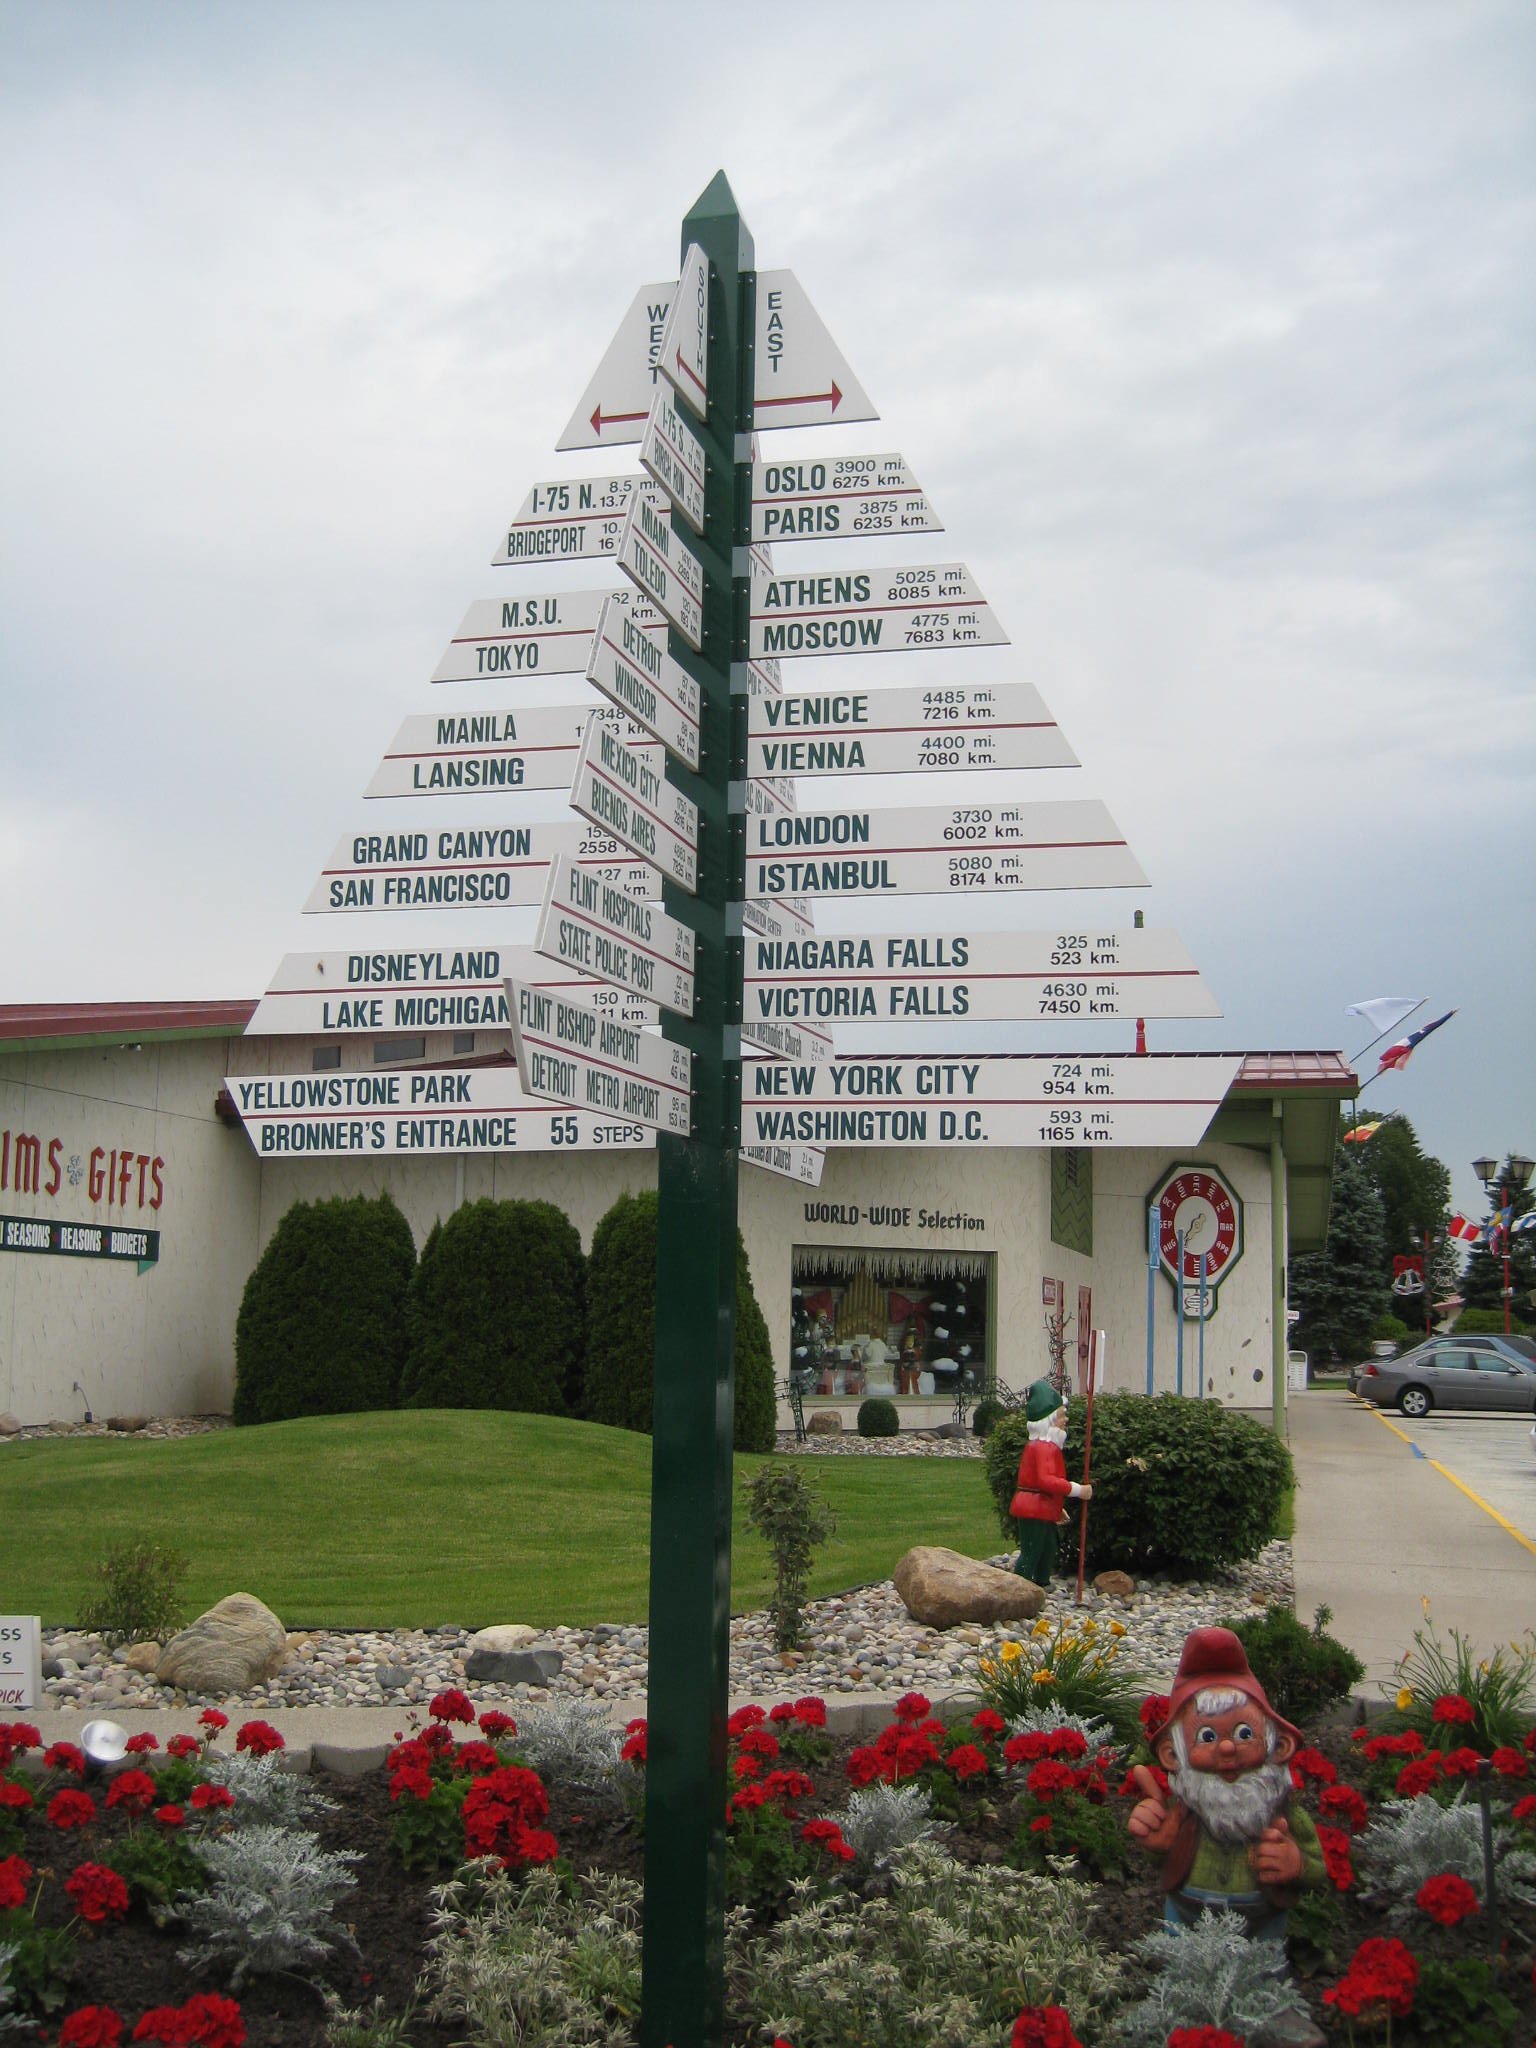 A large directional tree at the Bronner's Christmas Store, the world's largest Christmas store, in Frankenmuth, Michigan.